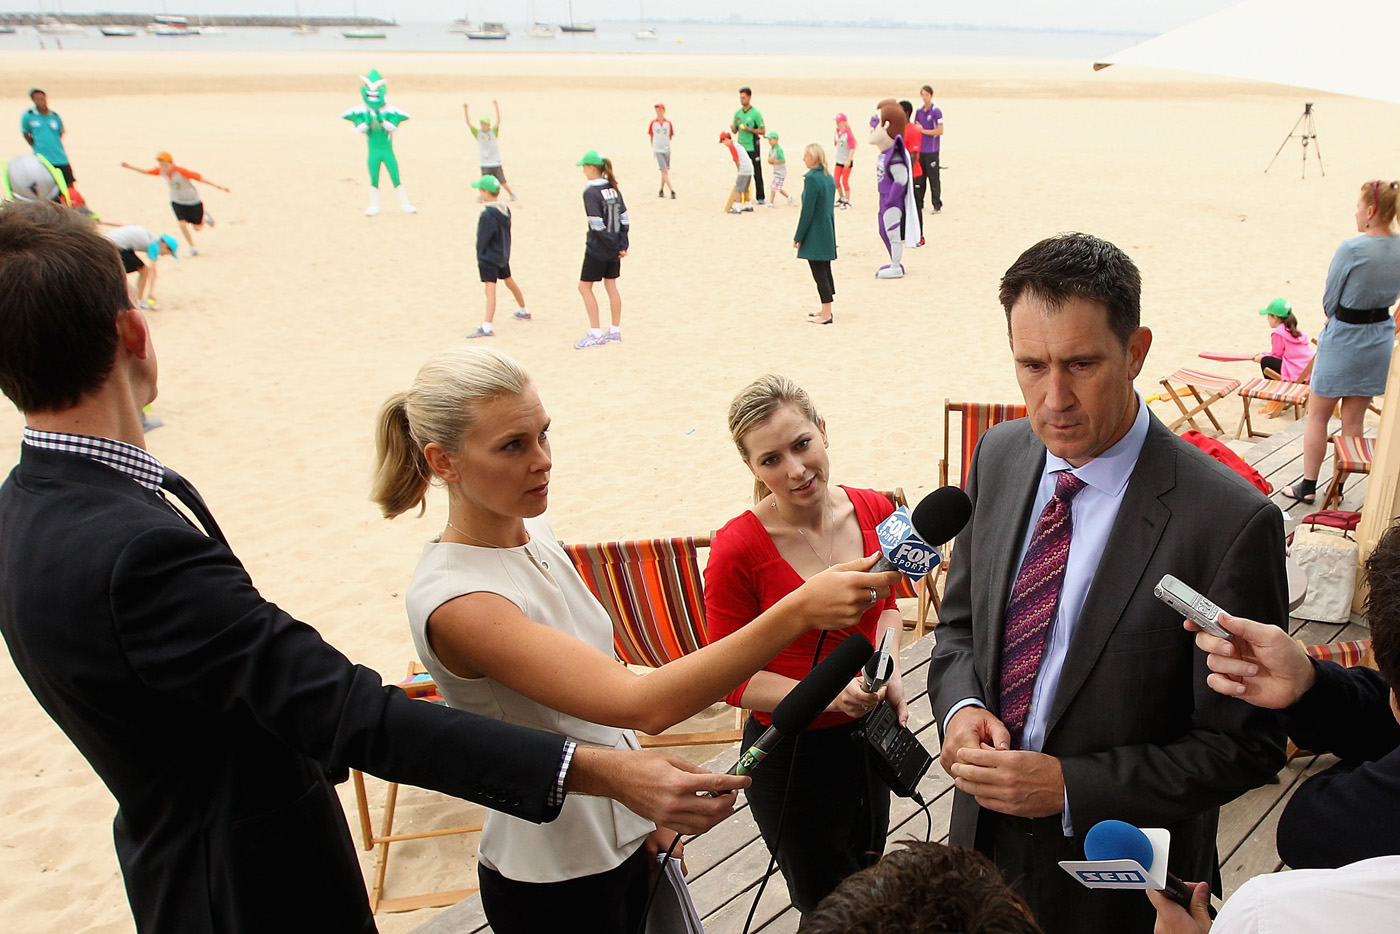 James Sutherland speaks to the media ahead of the BBL